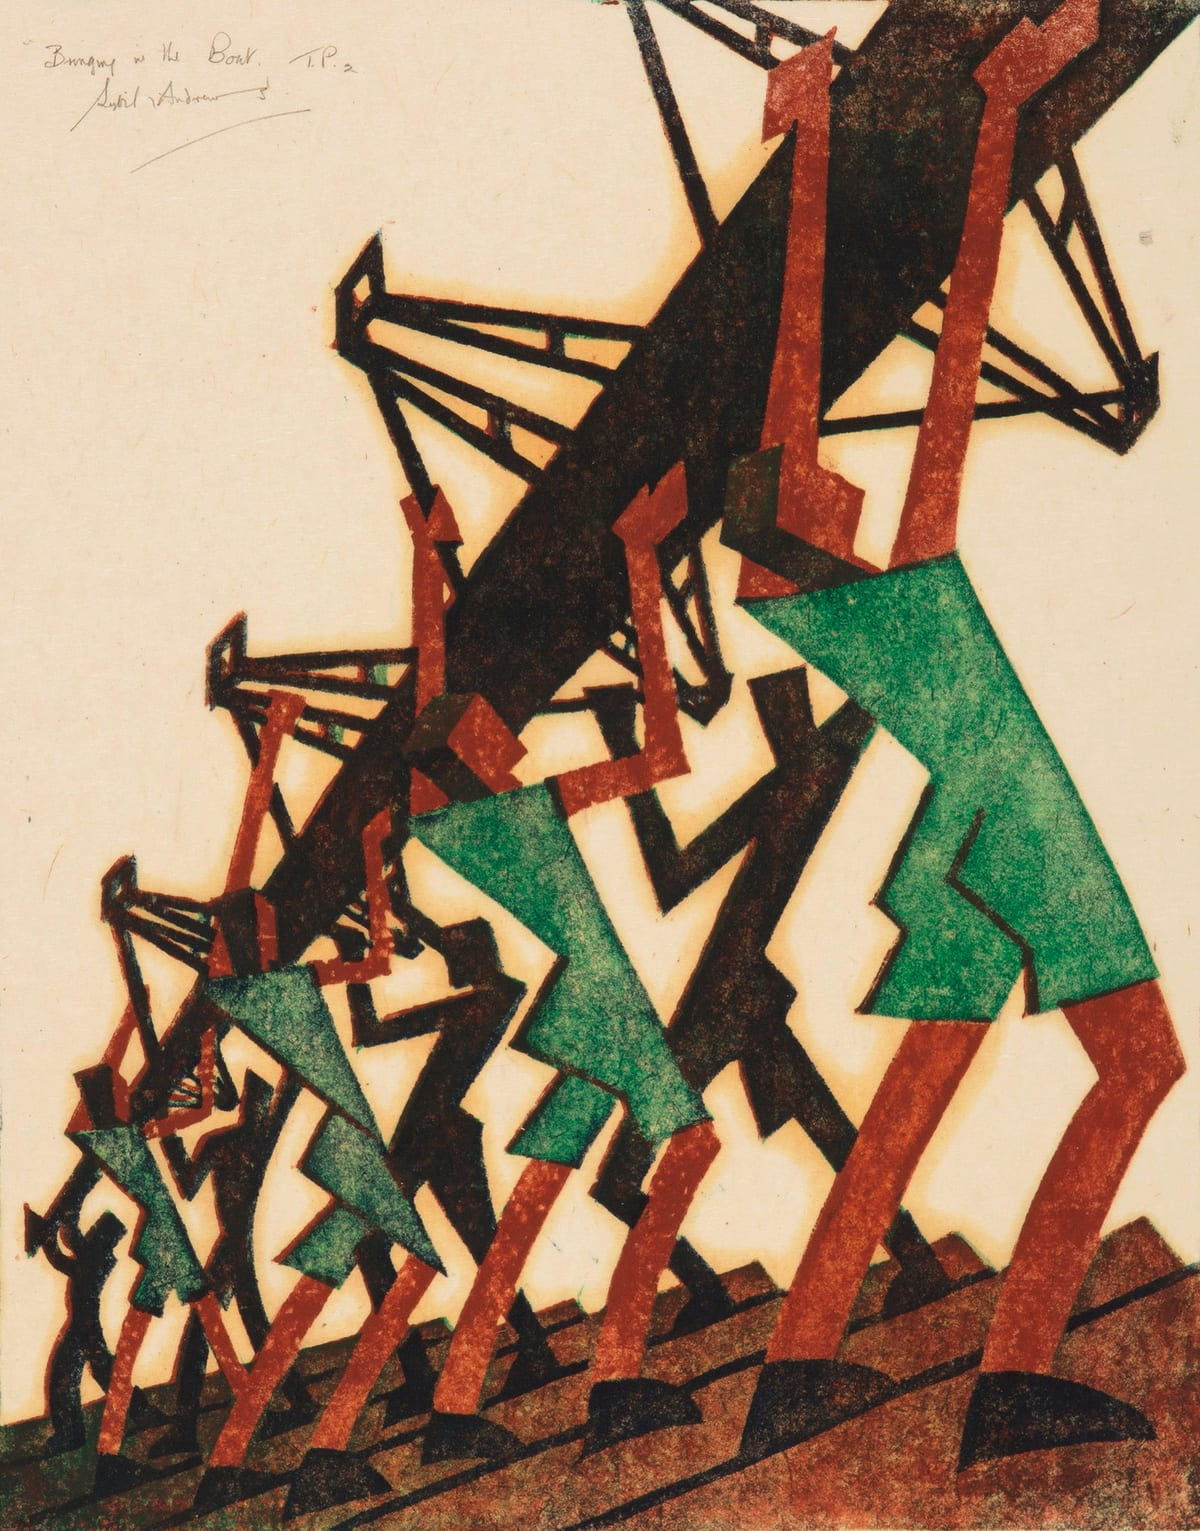 Sybil Andrews Bringing in the Boat, 1933 Linocut Image Size 33 x 25.9 cm Paper Size 37 x 30.2 cm Trial proof 2, 'T. P. 2', one of three trial proofs aside from the edition of 60.